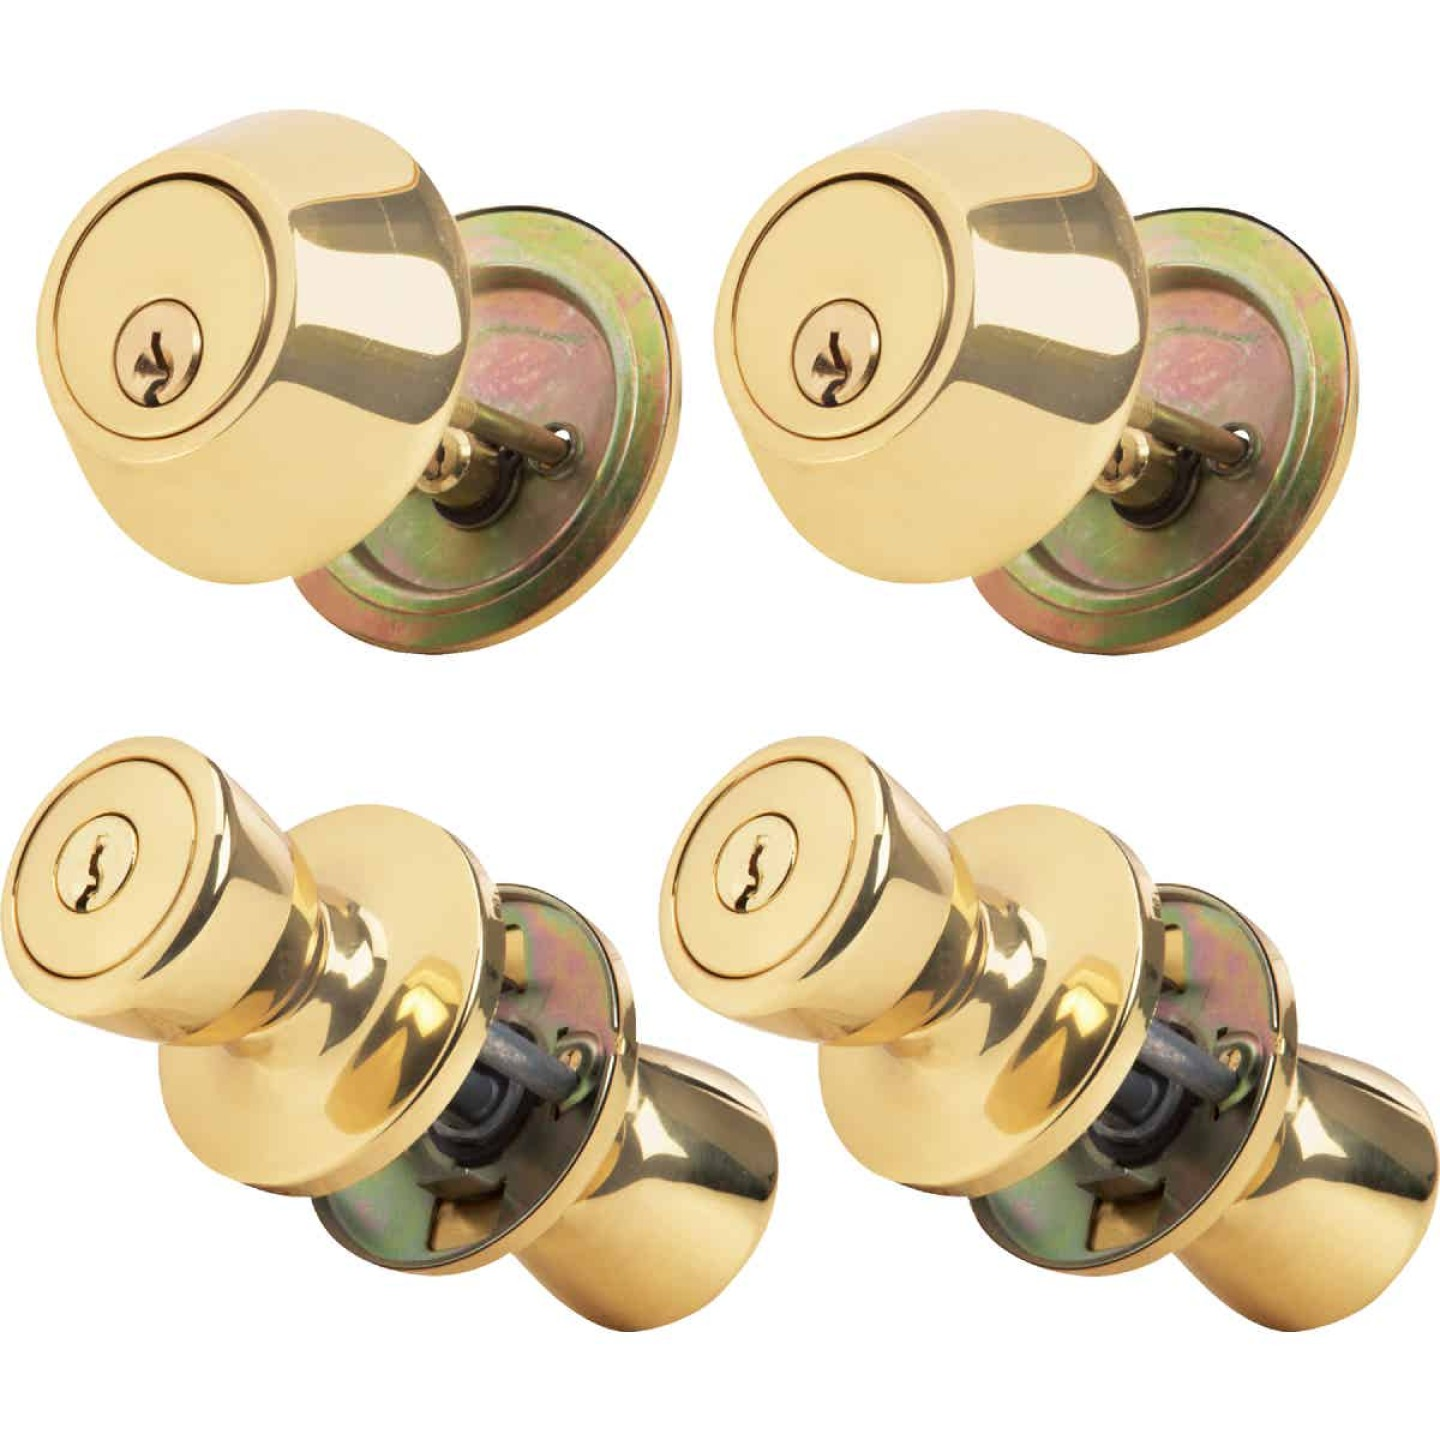 Steel Pro Polished Brass Deadbolt and Door Knob Combo Image 1